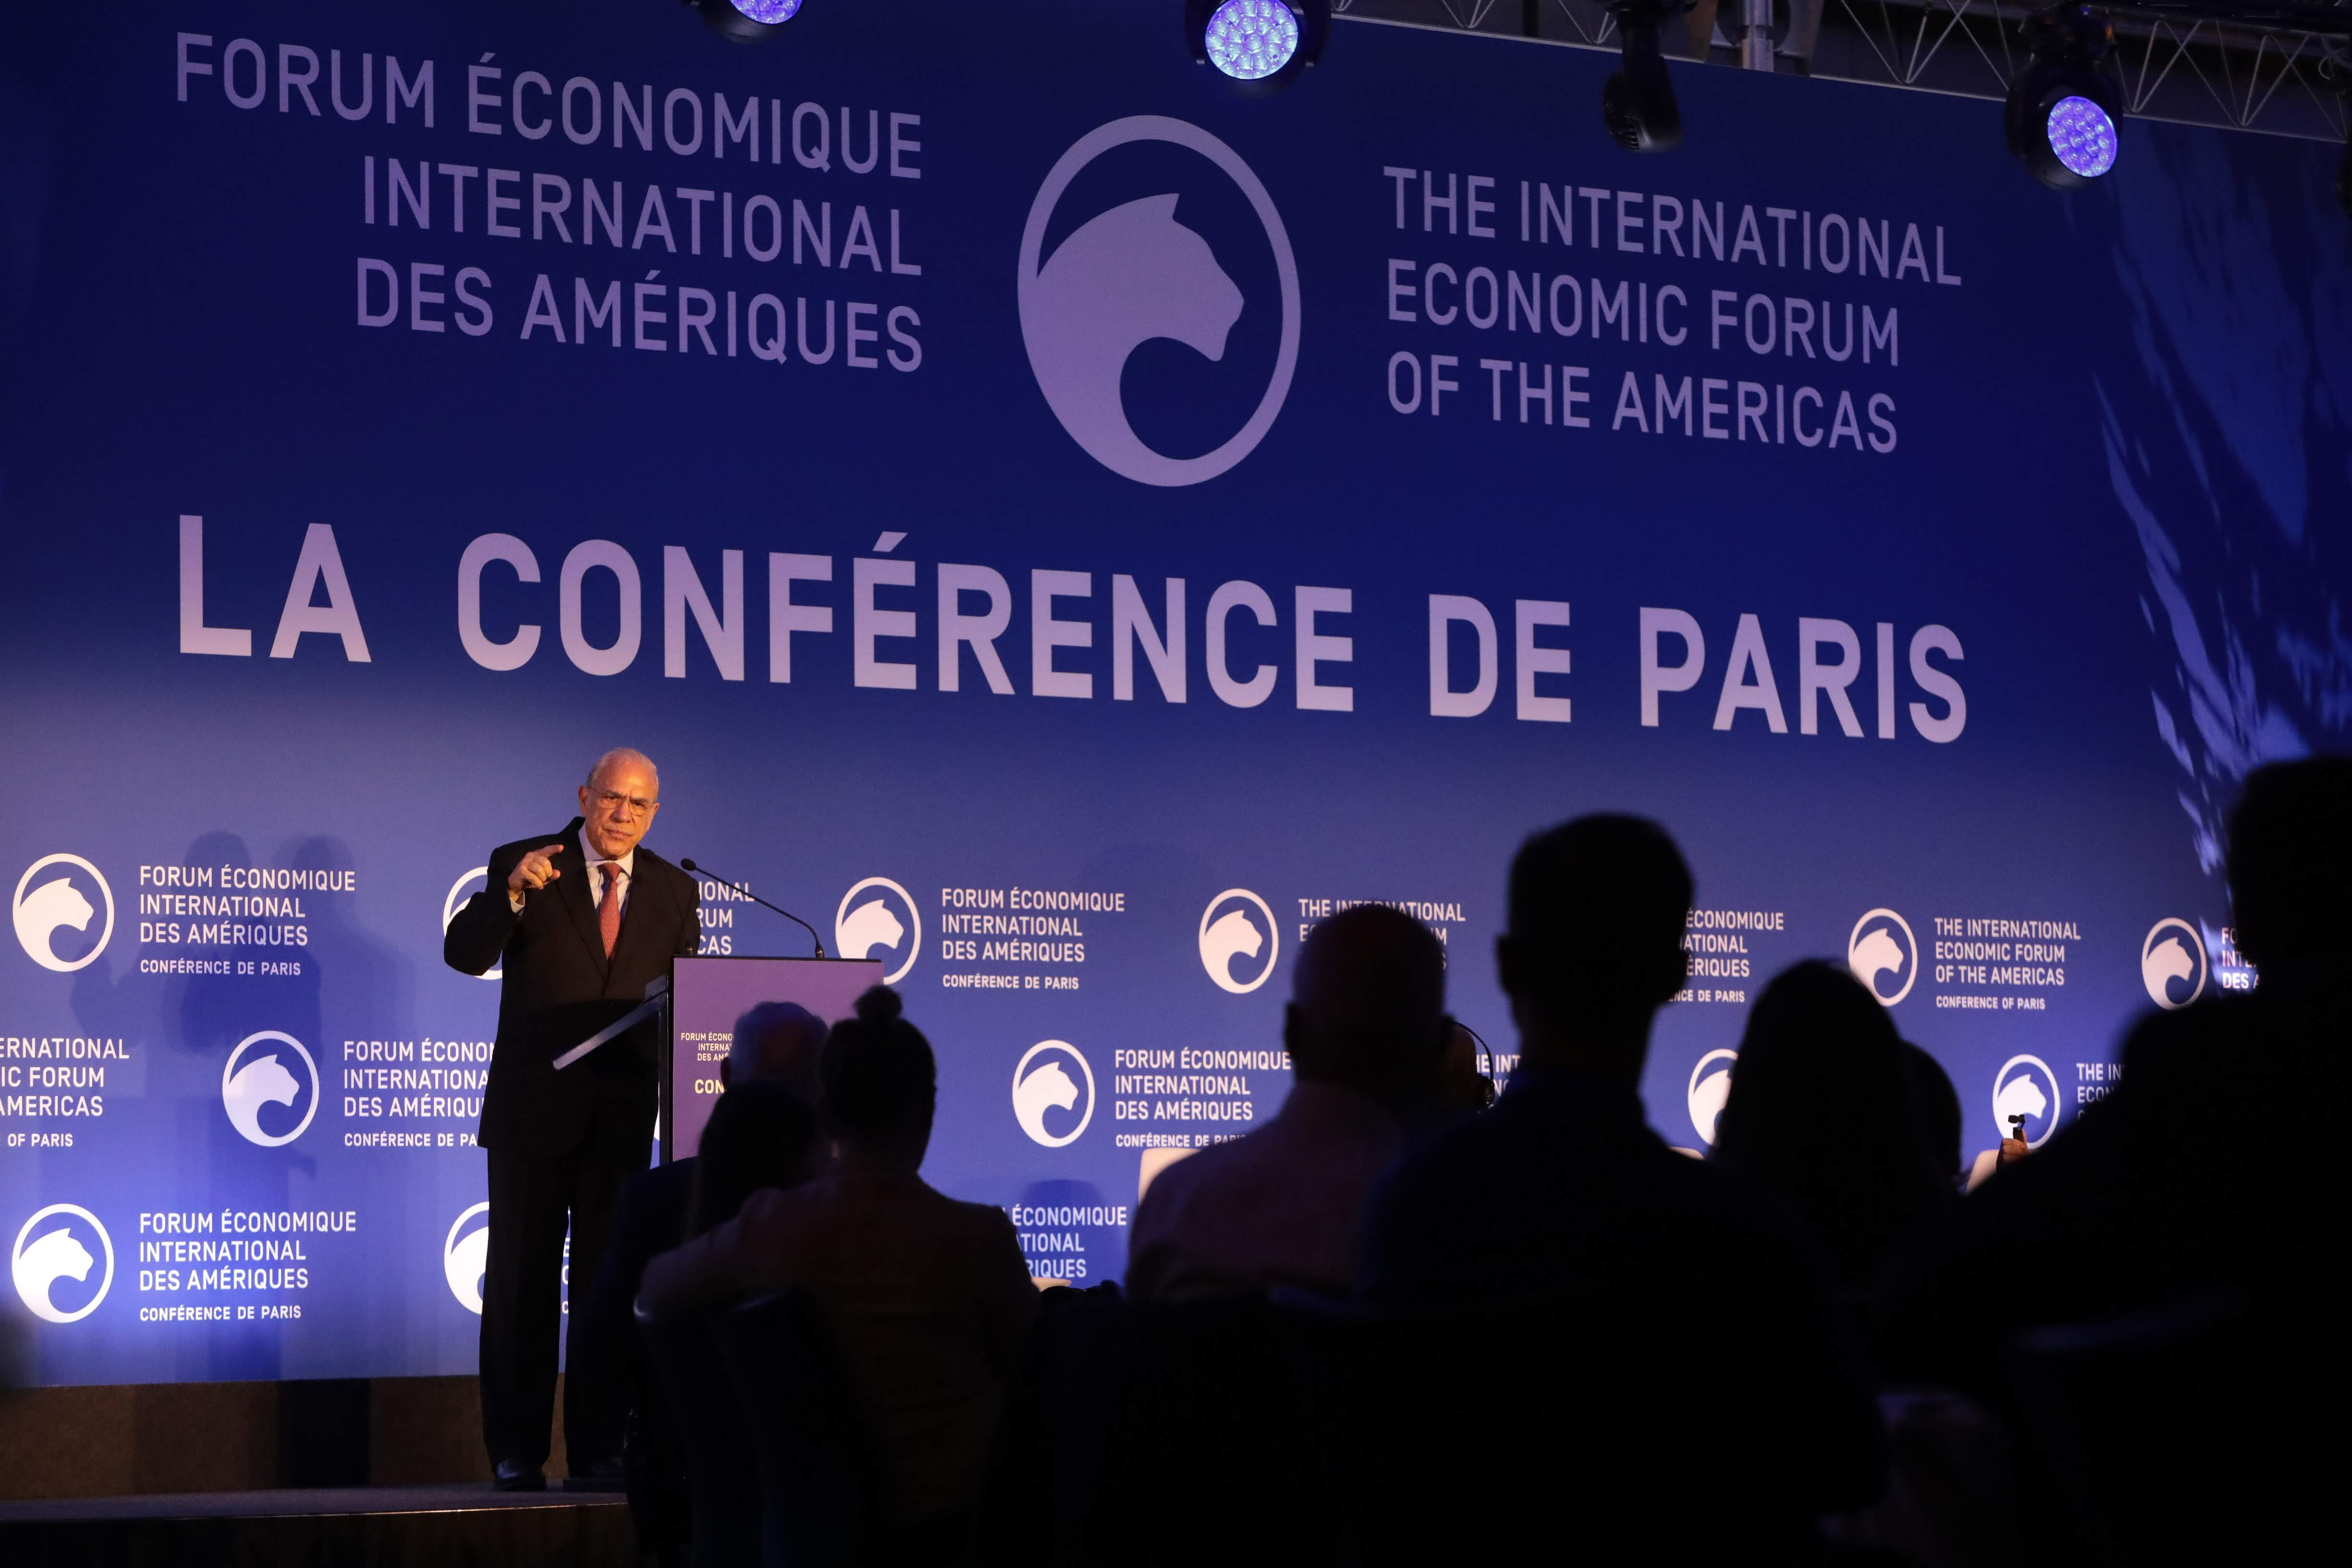 Ángel Gurría Secretary-General, Organisation for Economic Co-operation and Development (OECD) - Conference of Paris 2019